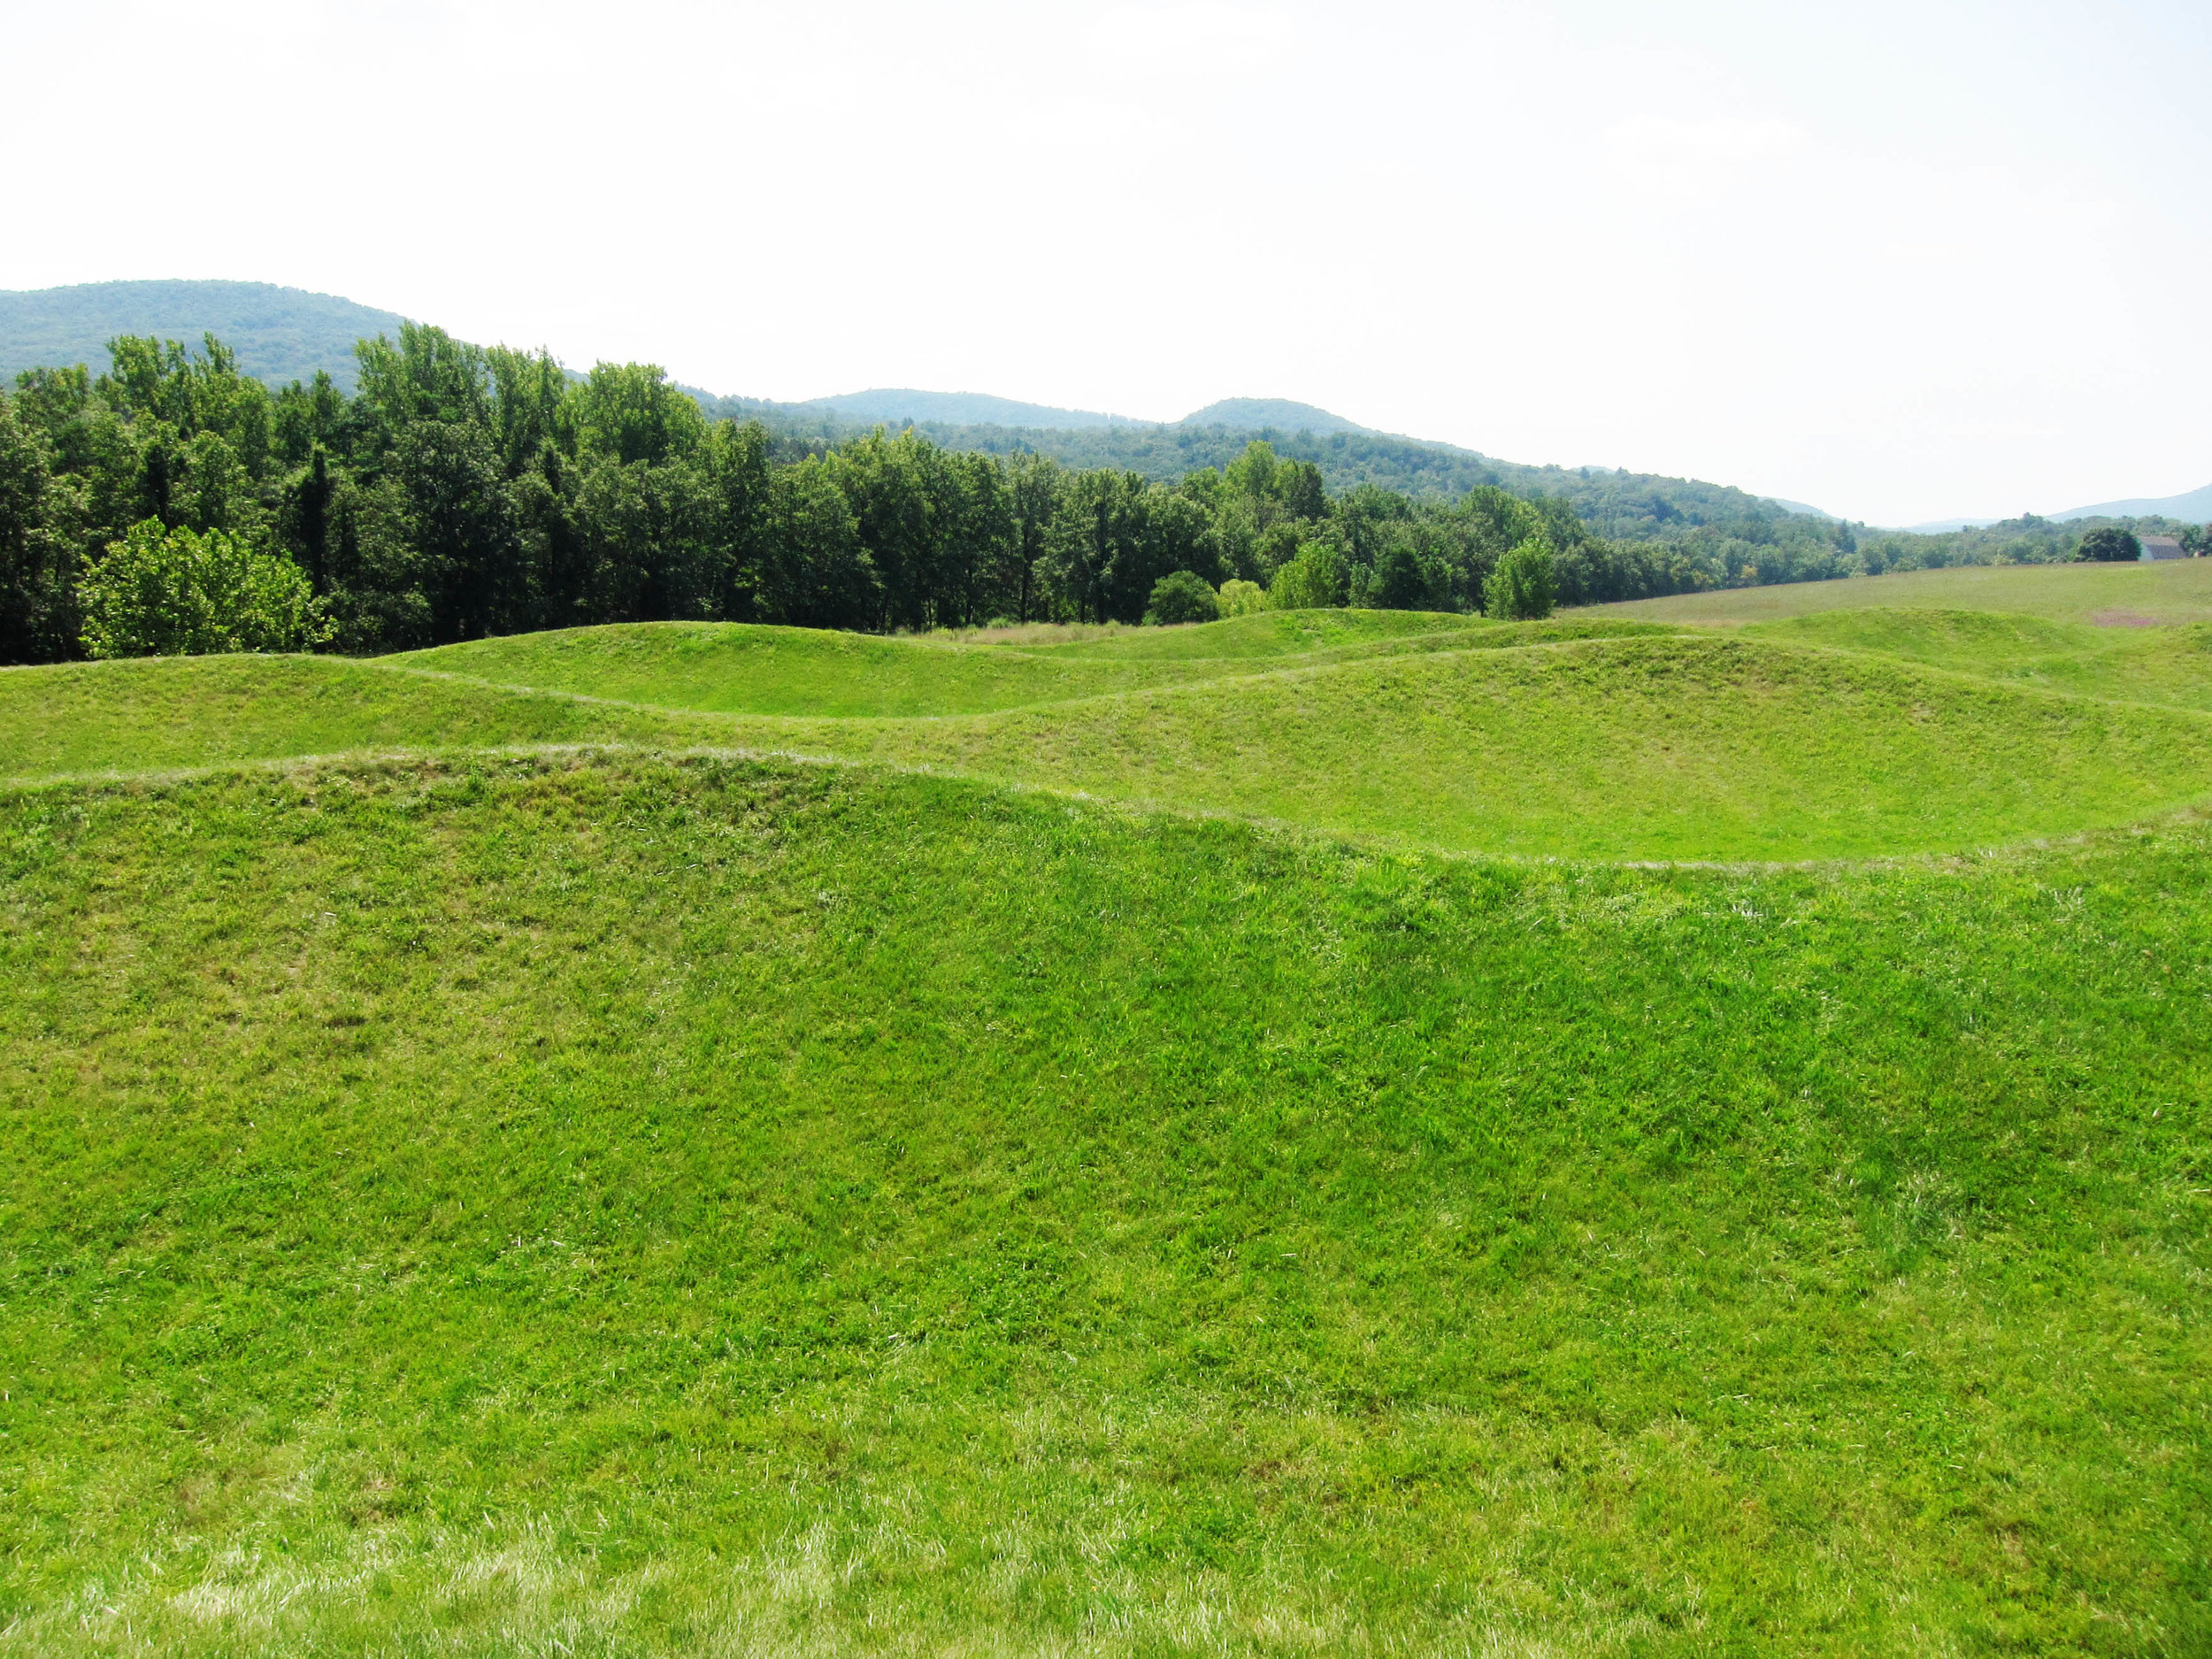 Maya Lin,  Storm King Wavefield, 2007-2008; photo credit: by the author